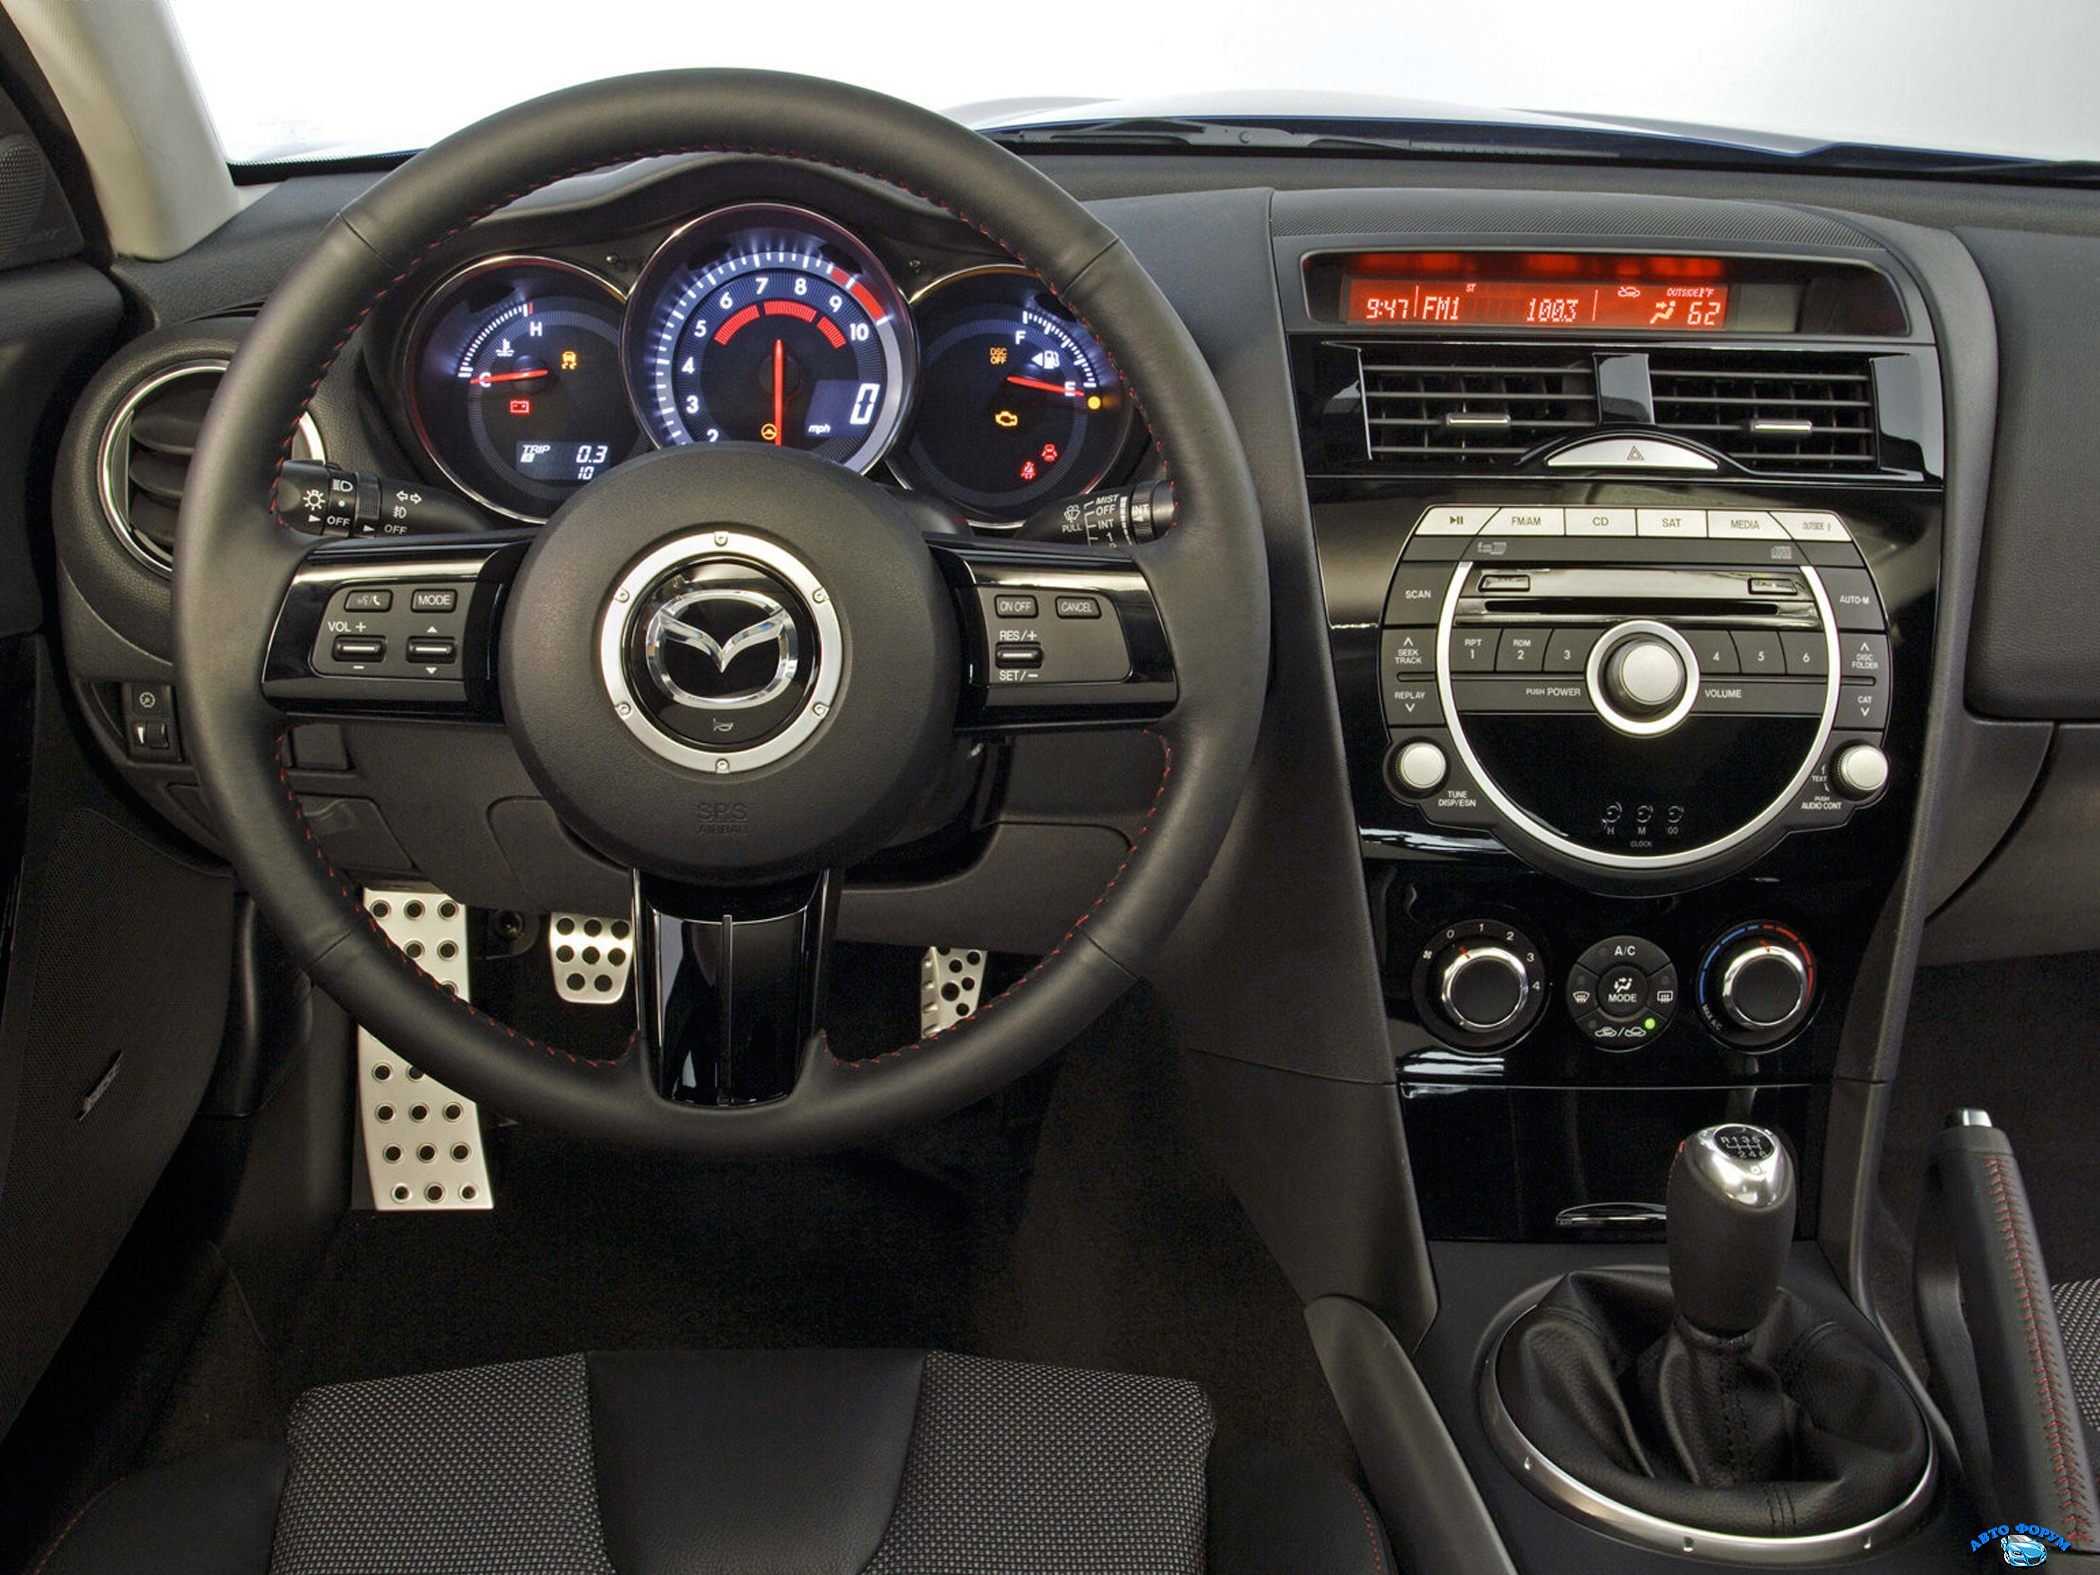 2010-Mazda-RX-8-Coupe-Hatchback-Sport-4dr-Coupe-Interior.png